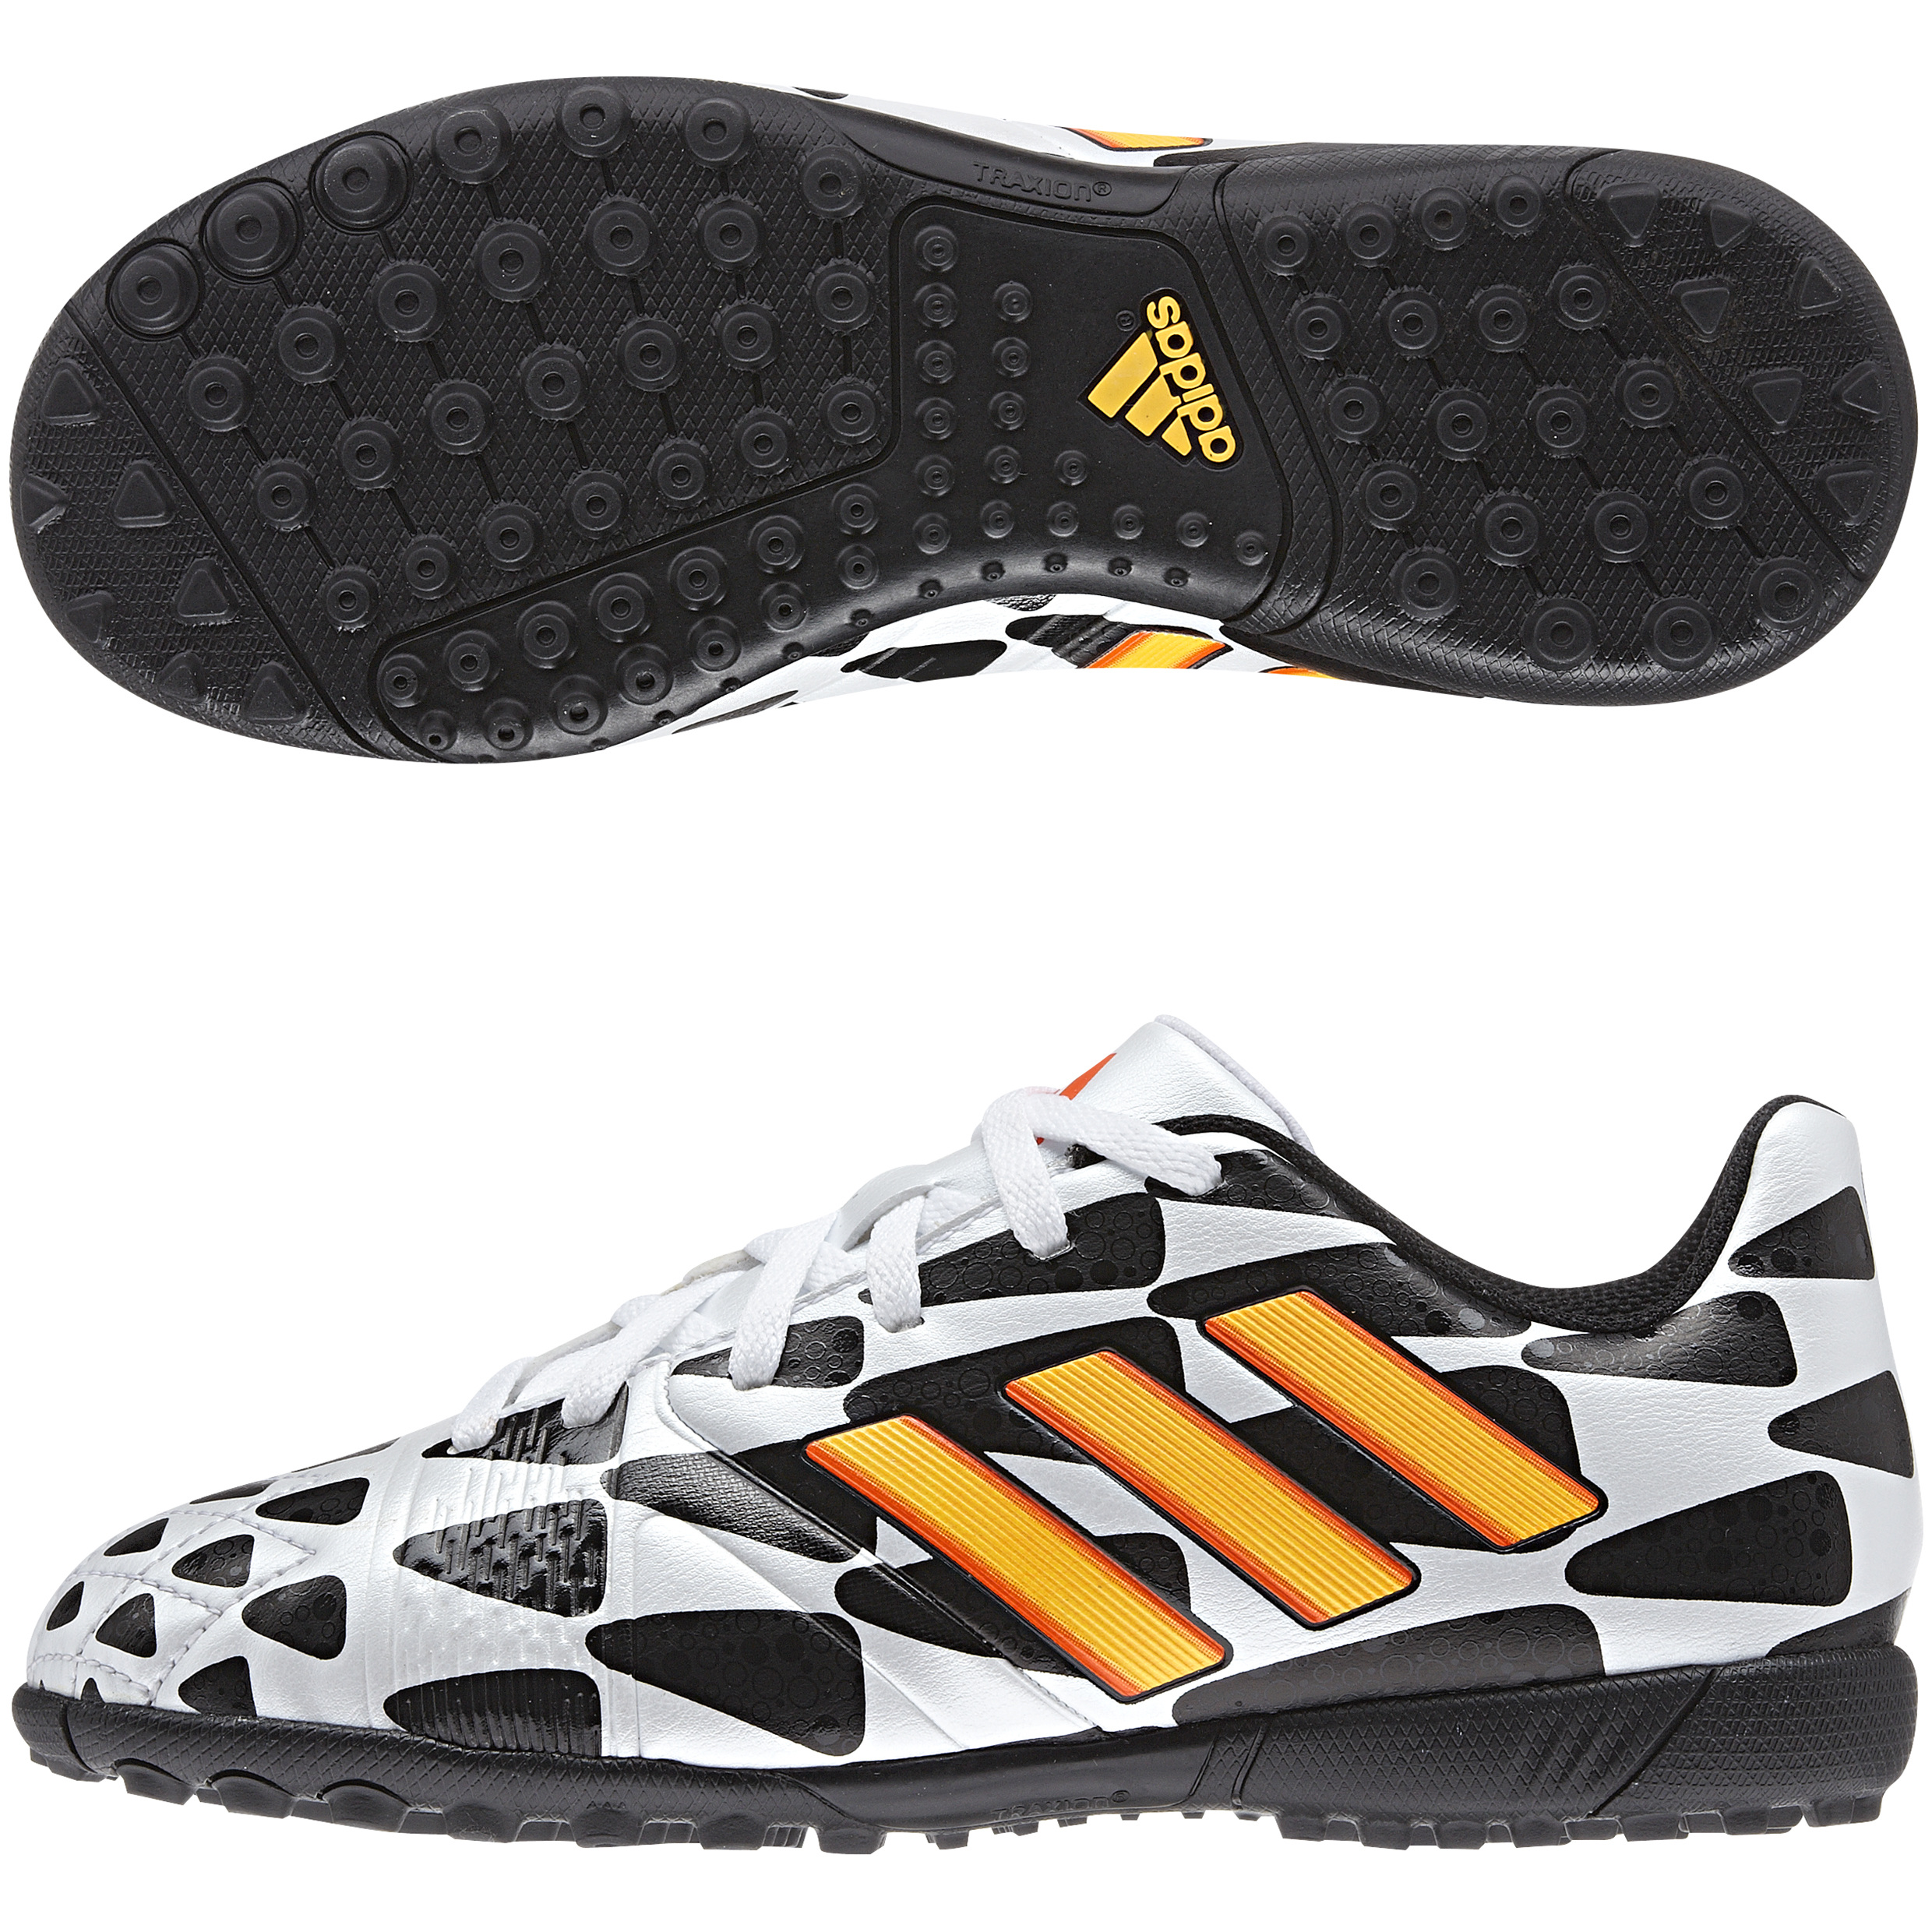 Adidas Nitrocharge 3.0 World Cup 2014 Astroturf Trainers - Kids White